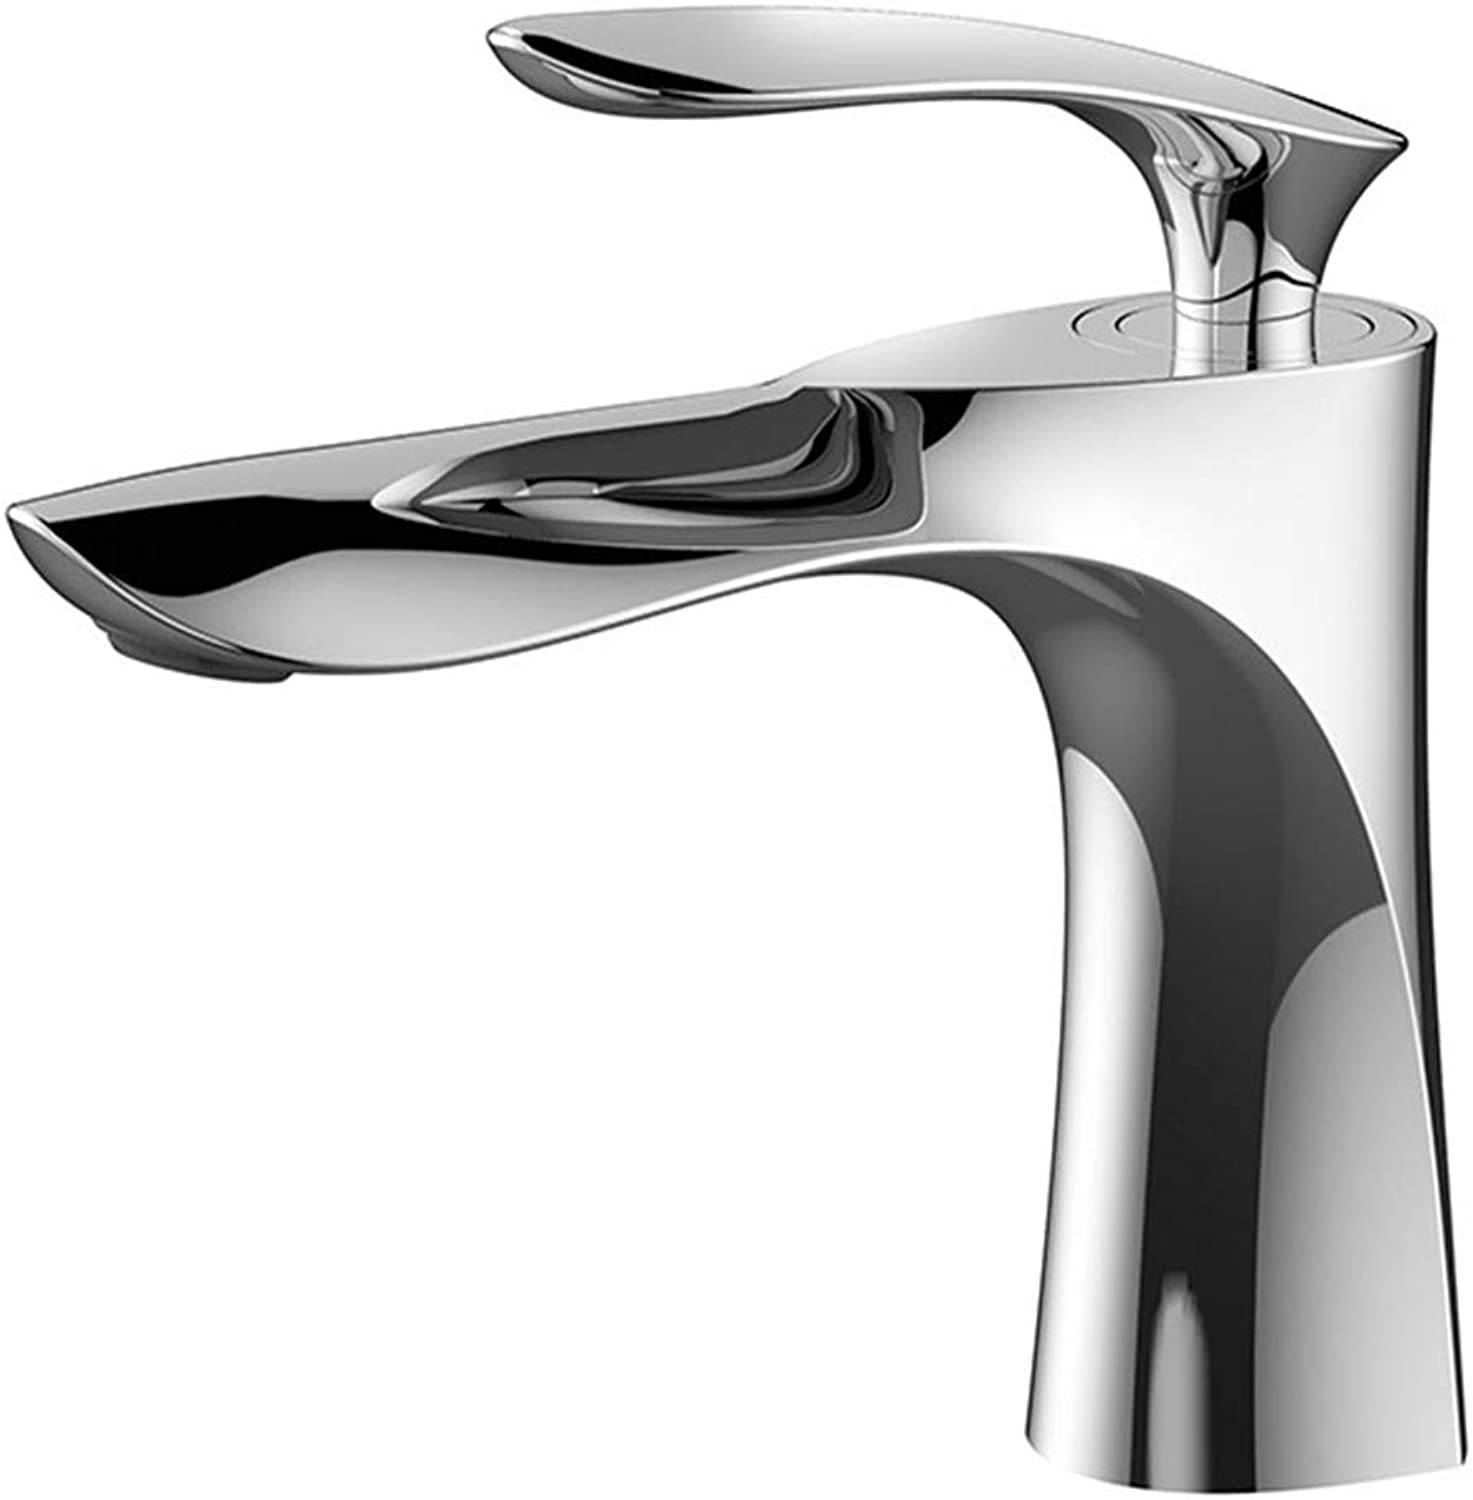 Basin Faucets Elegant Bathroom Sink Hot And Cold Water Mixer Toilet Crane Tap Brass Chrome Finish,Chrome